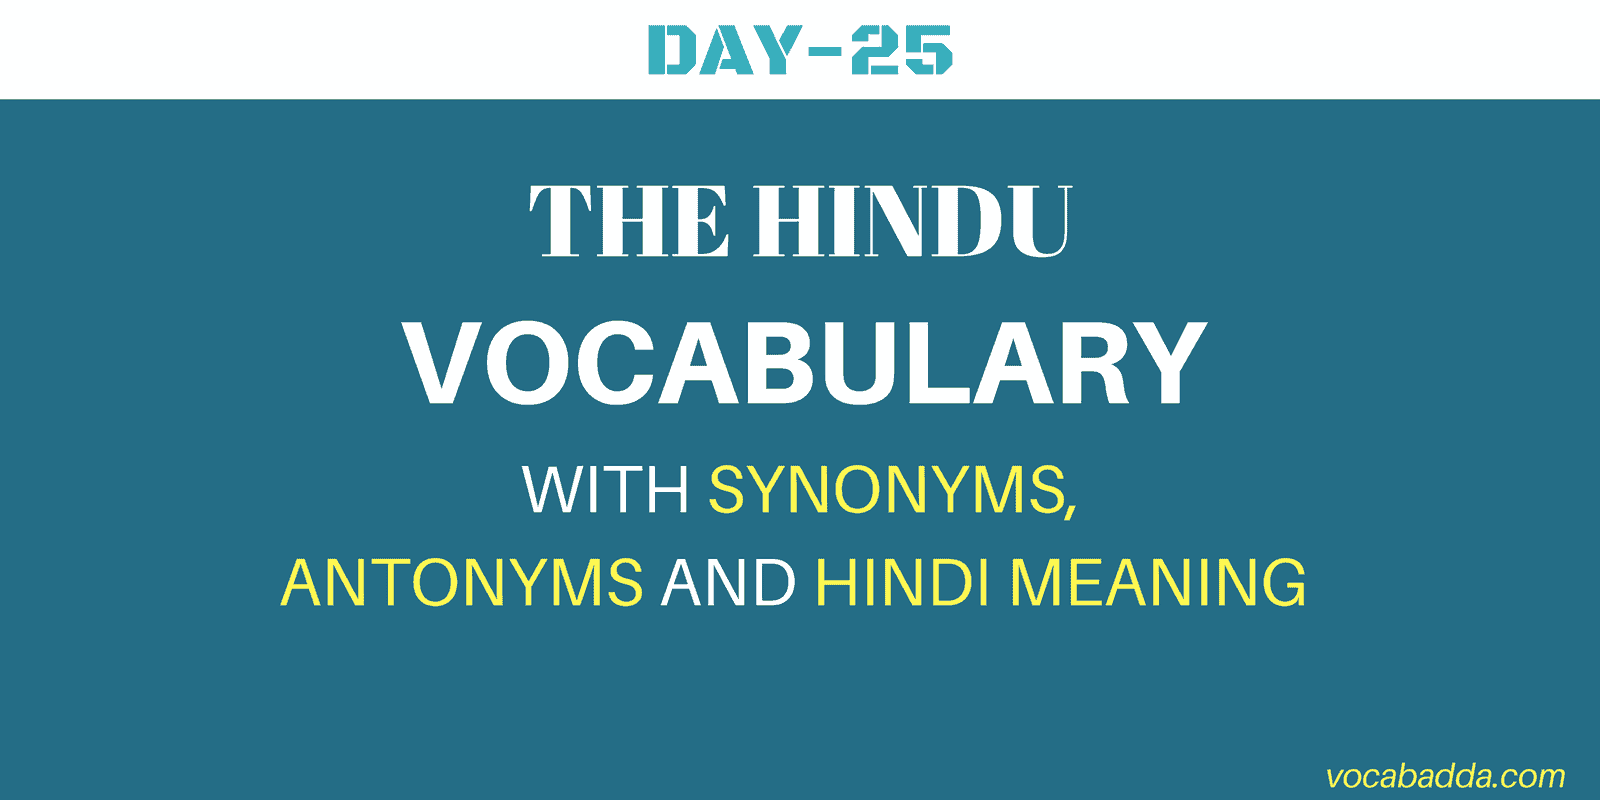 The Hindu Vocabulary Day-25